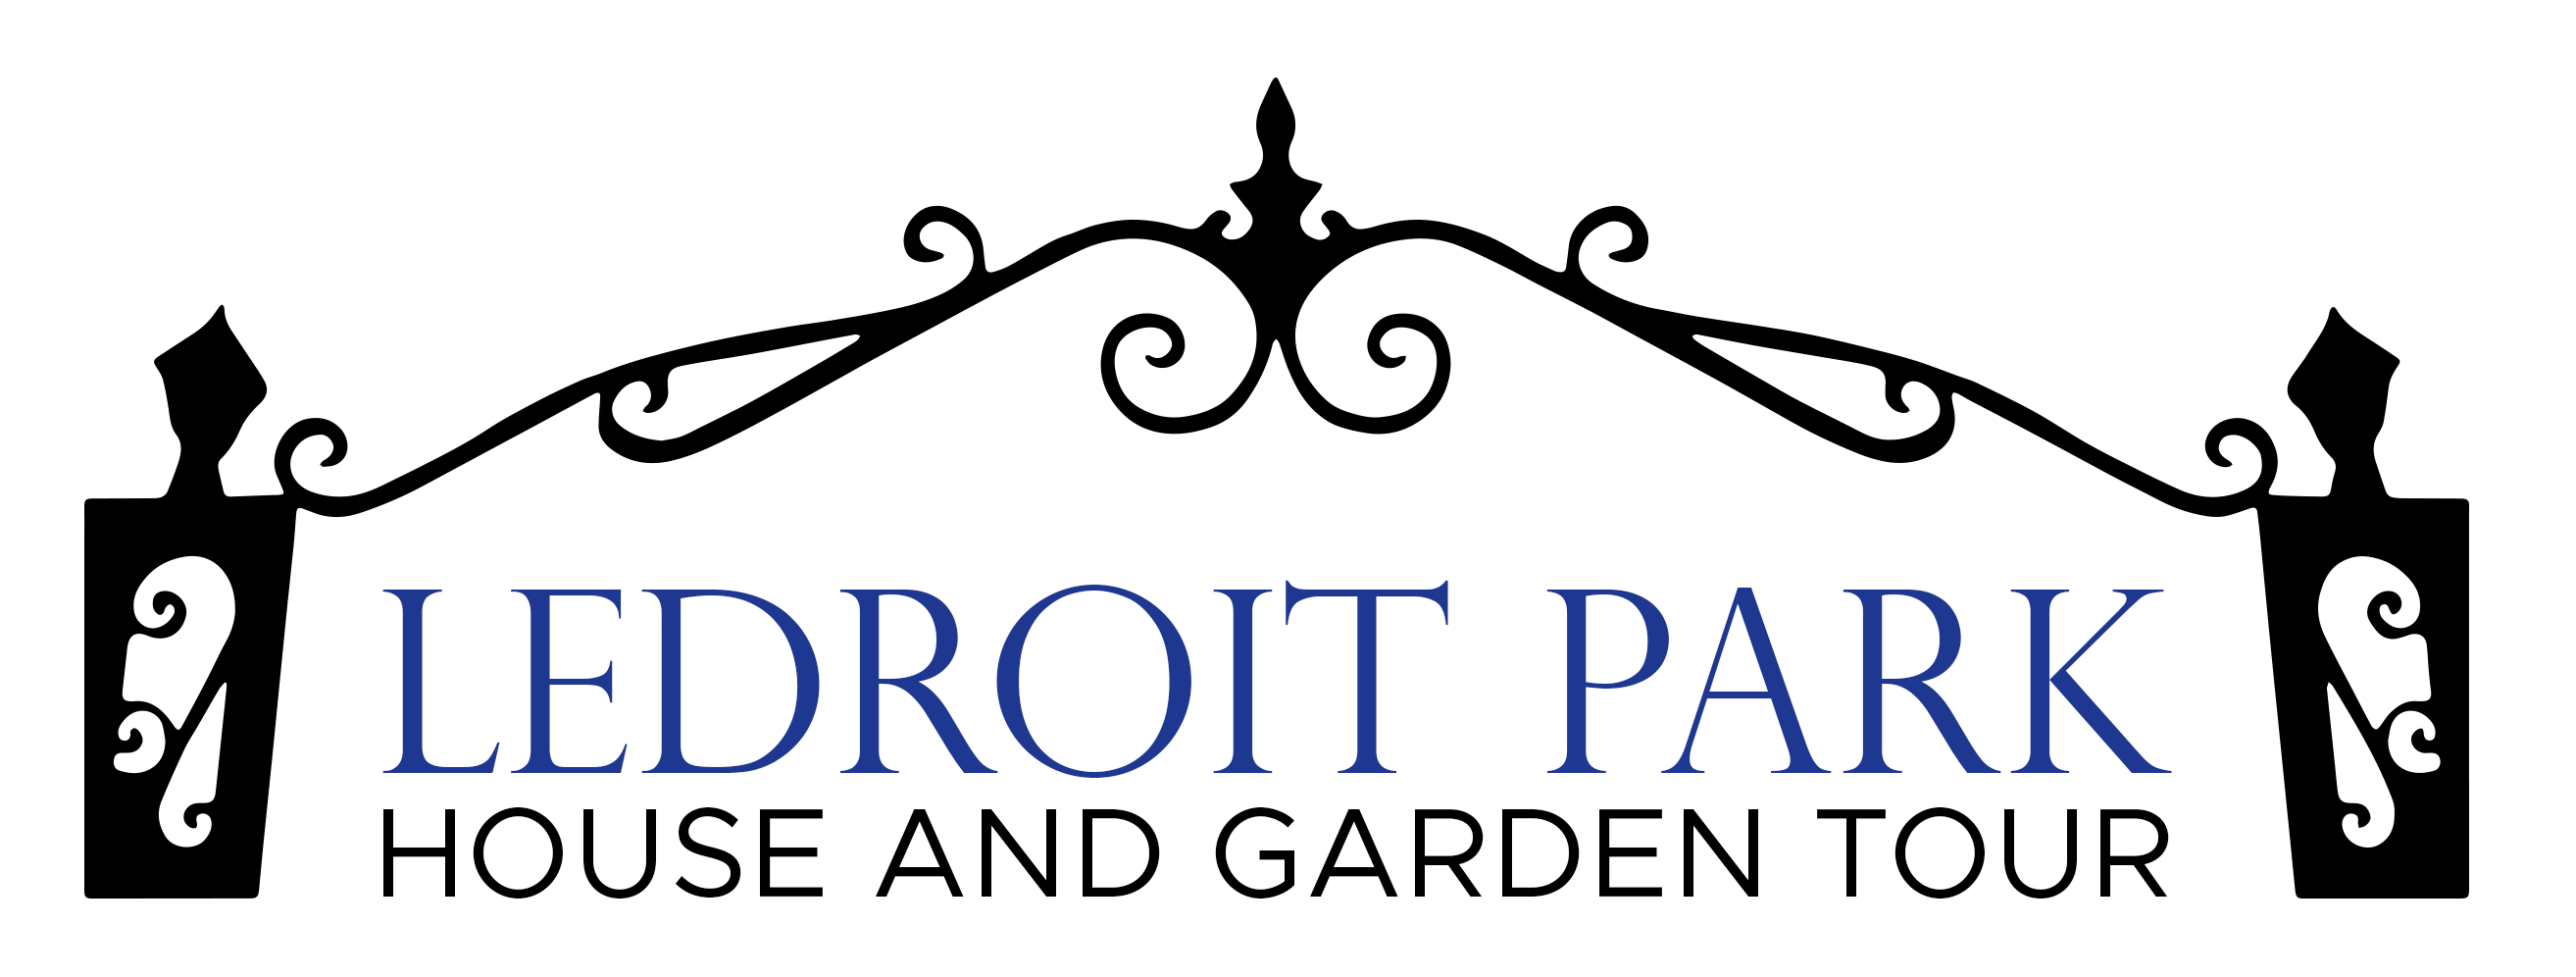 Inaugural LeDroit Park House and Garden Tour